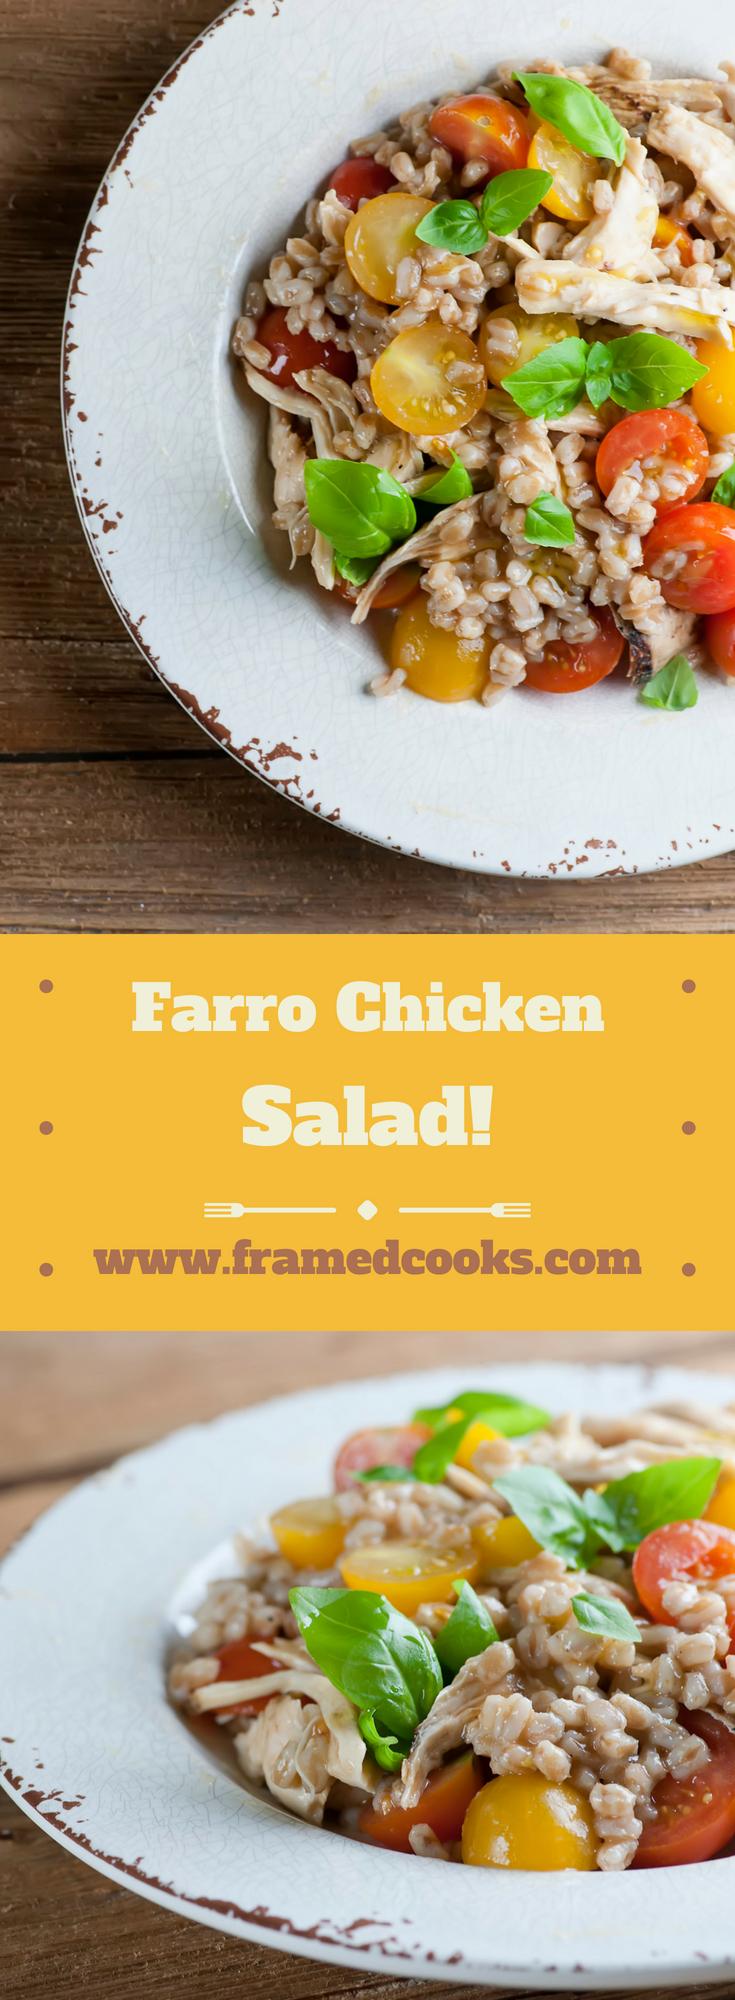 This easy recipe for farro chicken salad combines chicken with cheery vegetables and herbs and the nutty deliciousness of farro!  If you haven't tried farro yet, this recipe is for you!